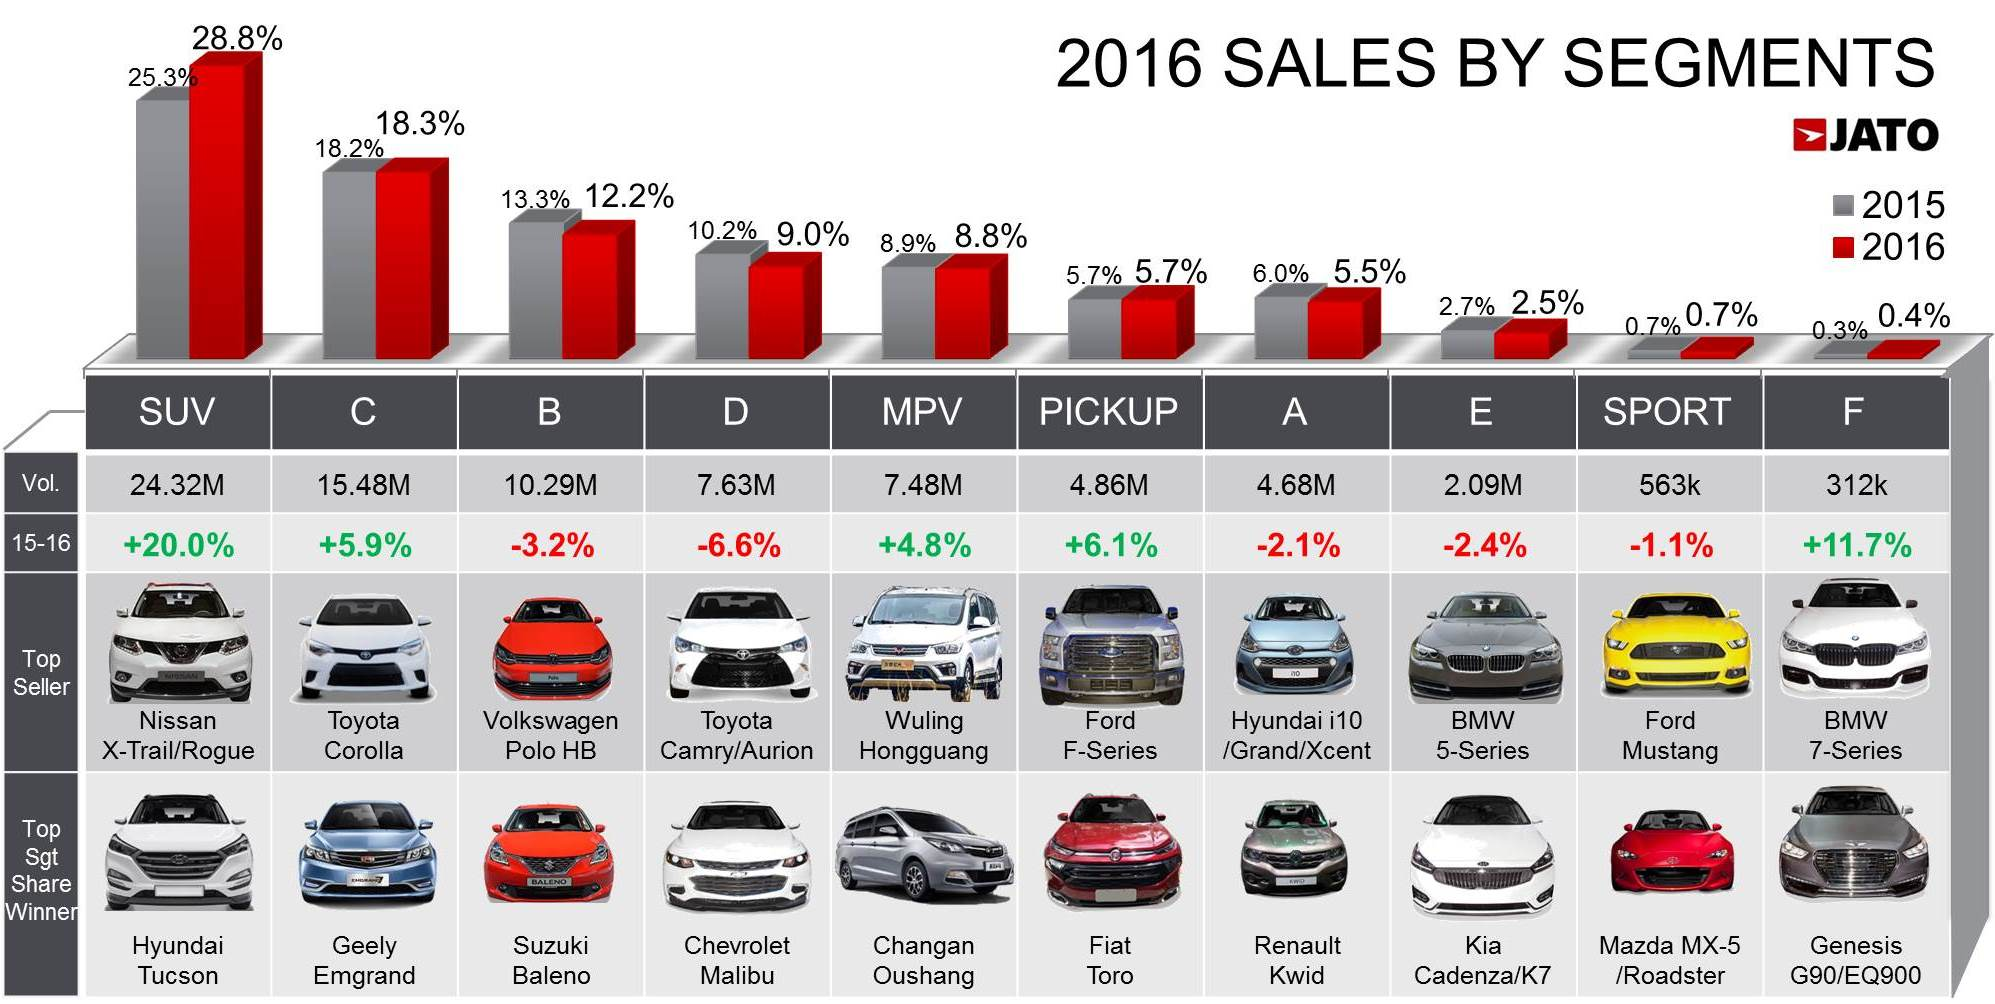 Global Car Sales Increased To 84.24 Million Units In 2016 ...